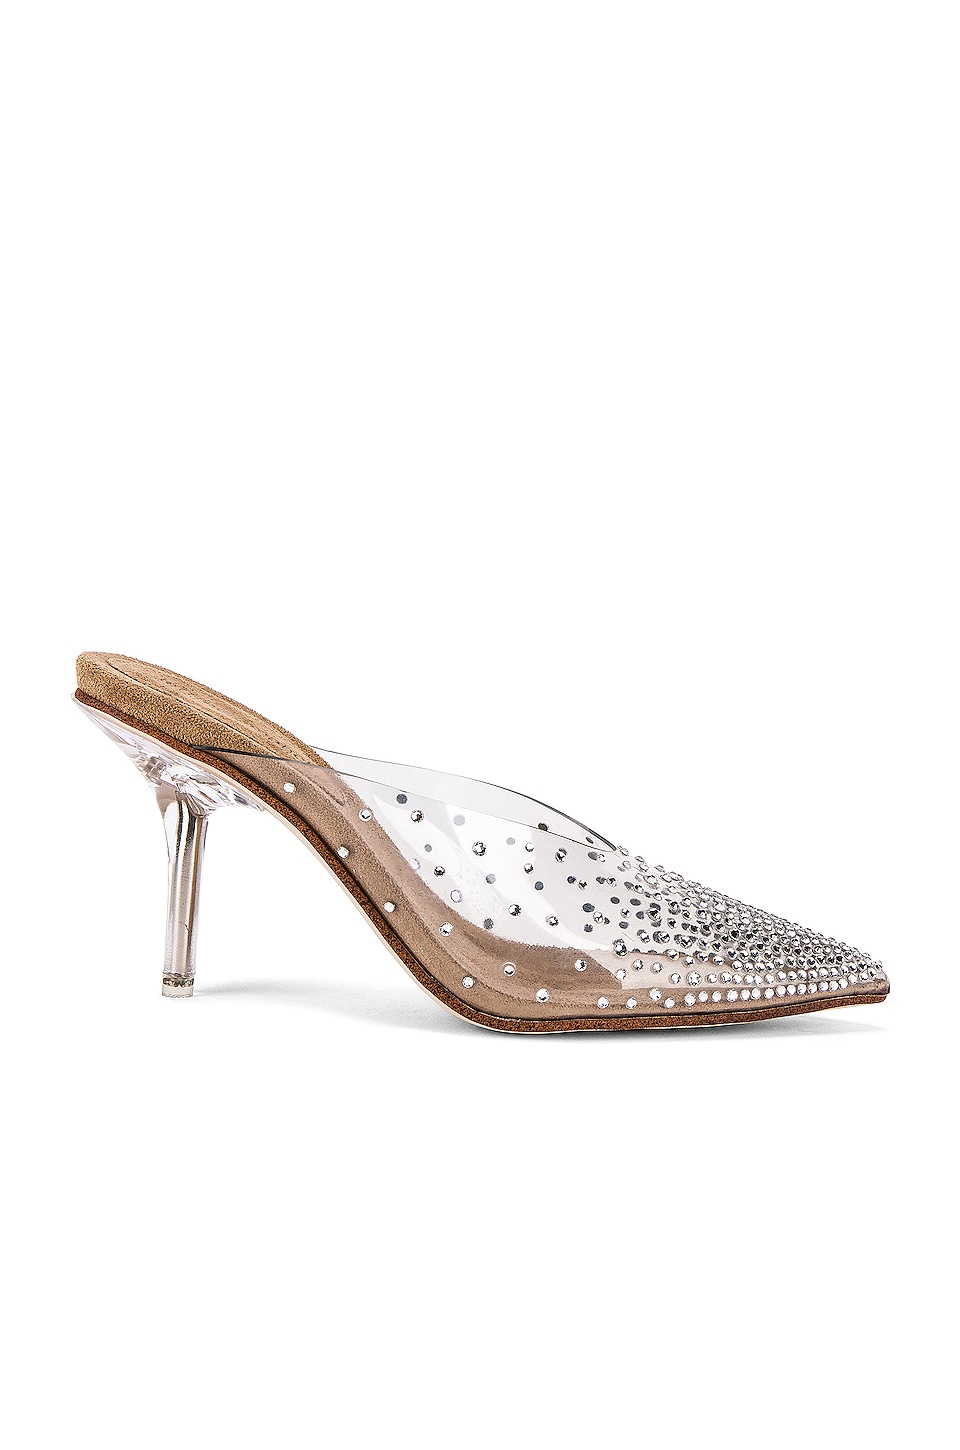 Jeffrey Campbell Drizella Mule in Clear & Nude Suede